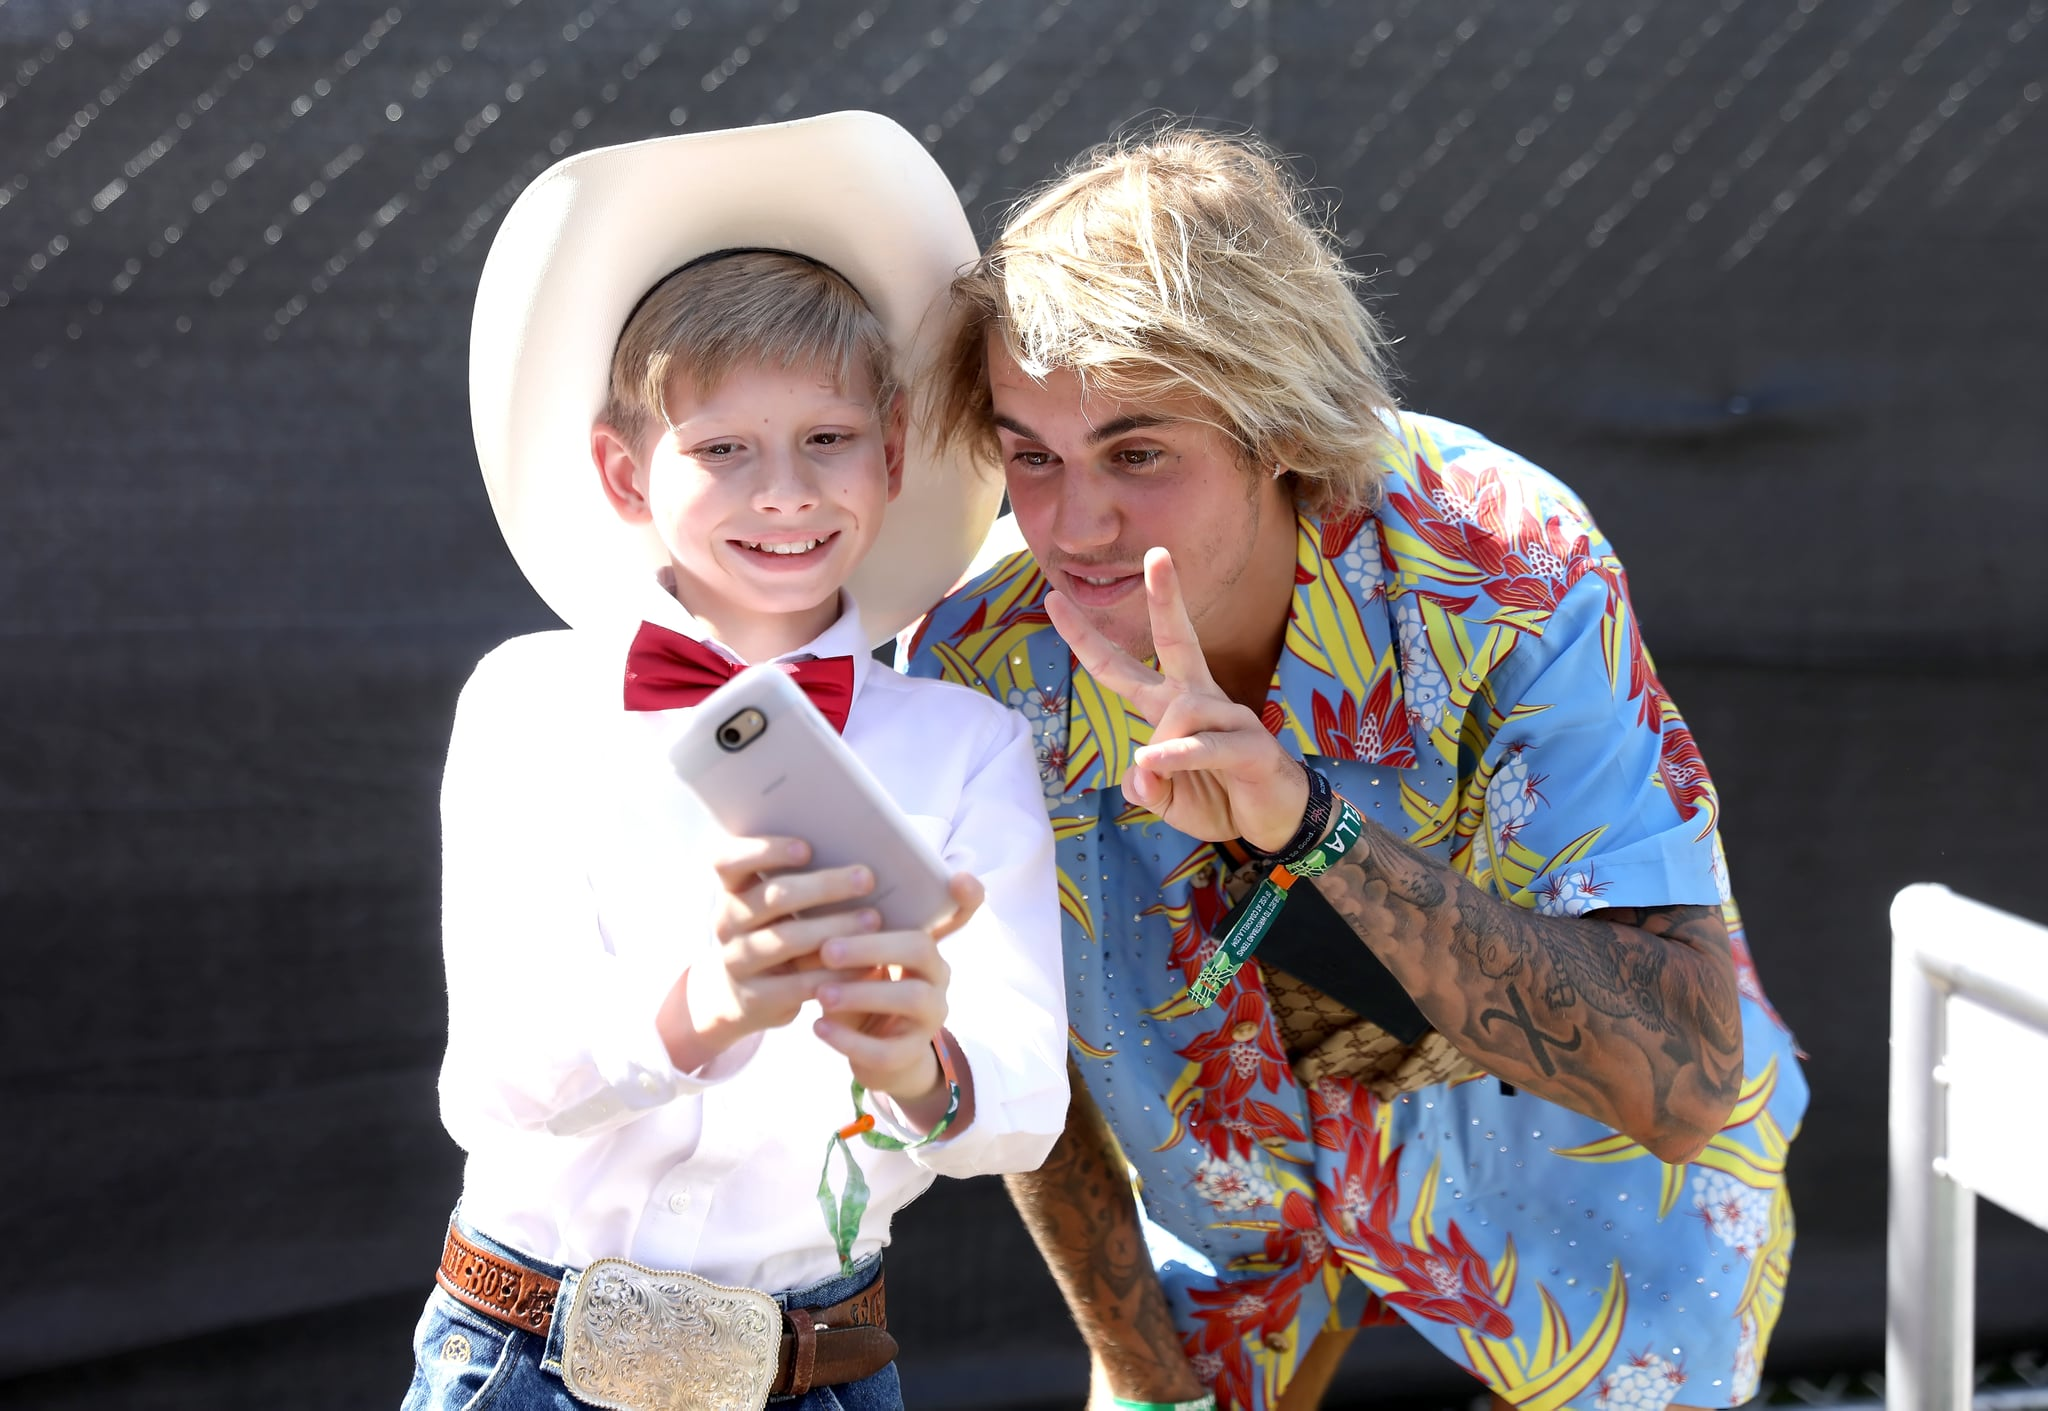 INDIO, CA - APRIL 13:  Viral internet sensation Mason Ramsey aka The Walmart Yodeling Boy, (L) and Recording Artist Justin Bieber pose for a selfie backstage during the 2018 Coachella Valley Music And Arts Festival at the Empire Polo Field on April 13, 2018 in Indio, California.  (Photo by Natt Lim/Getty Images for Coachella)